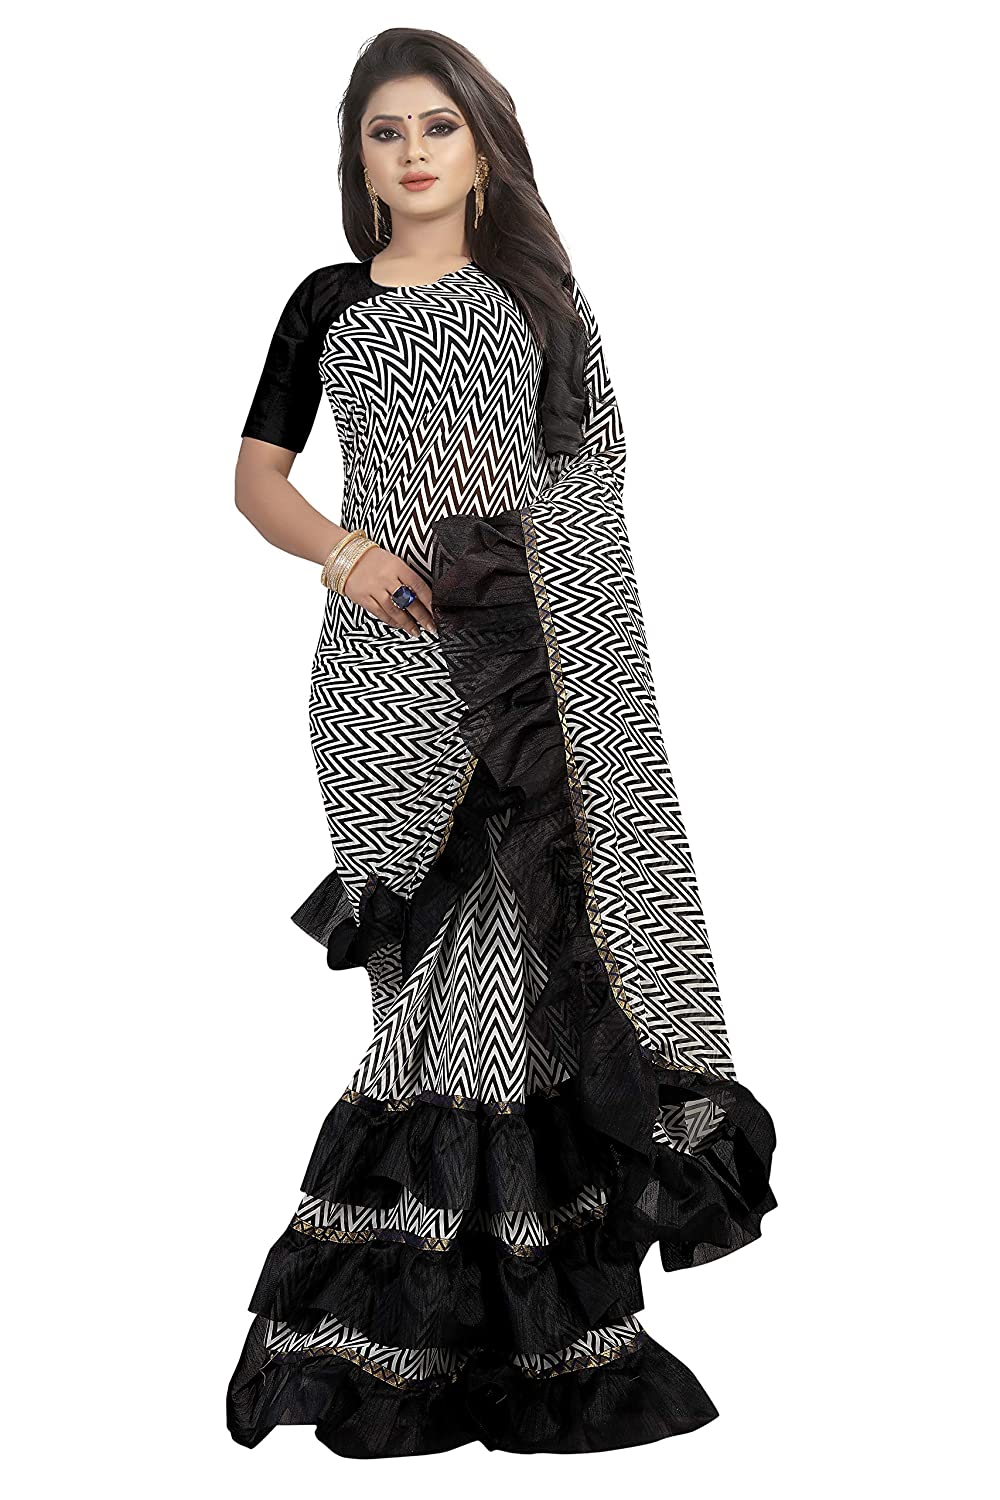 95172edf1ddb37 SilverStar Women's Georgette Black And White Zebra Color Printed Saree With  Black Color Ruffle Layer And Blouse piece: Amazon.in: Clothing & Accessories